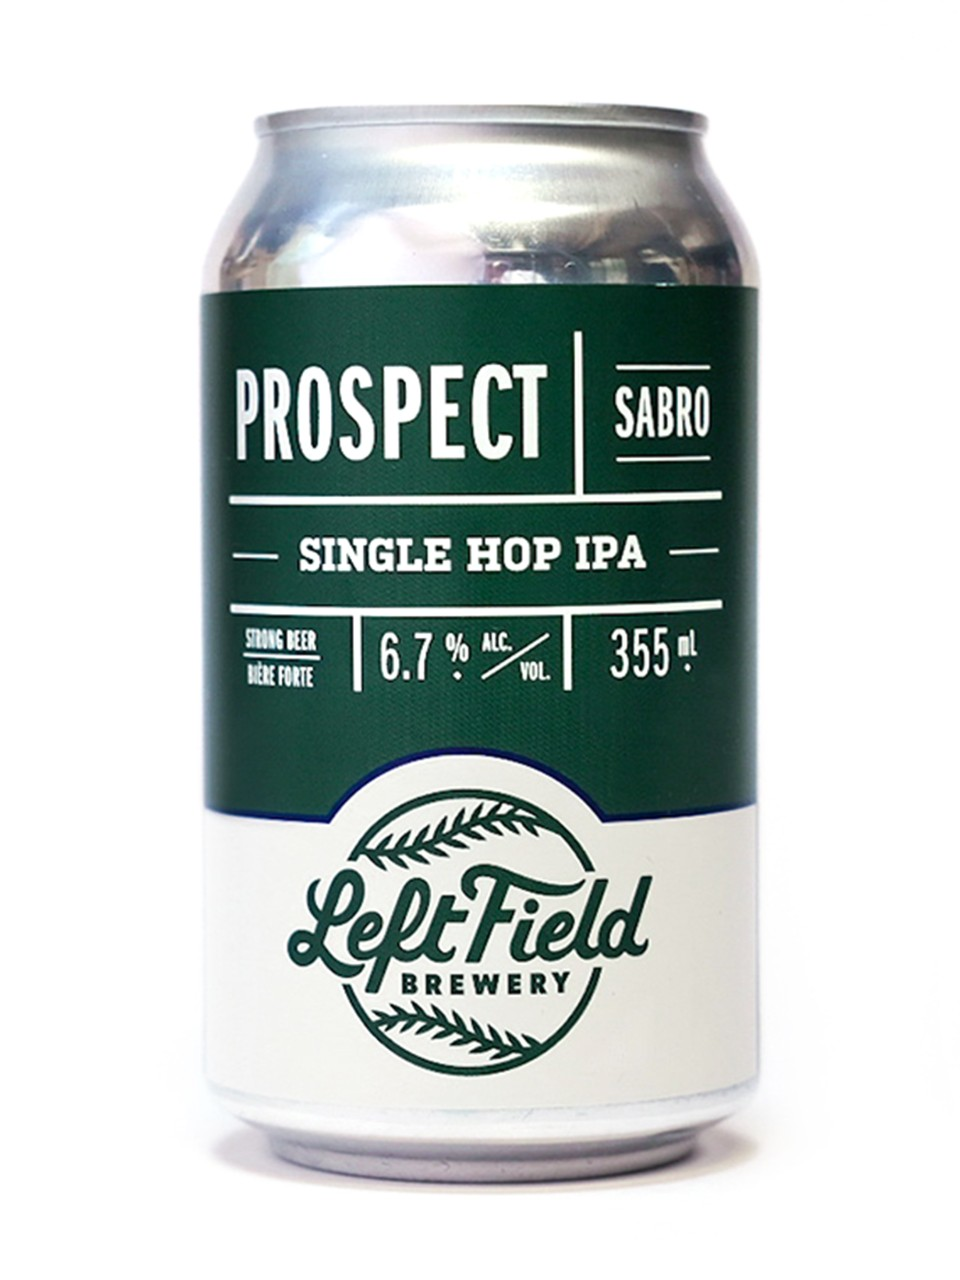 Left Field Prospect Sabro IPA from LCBO